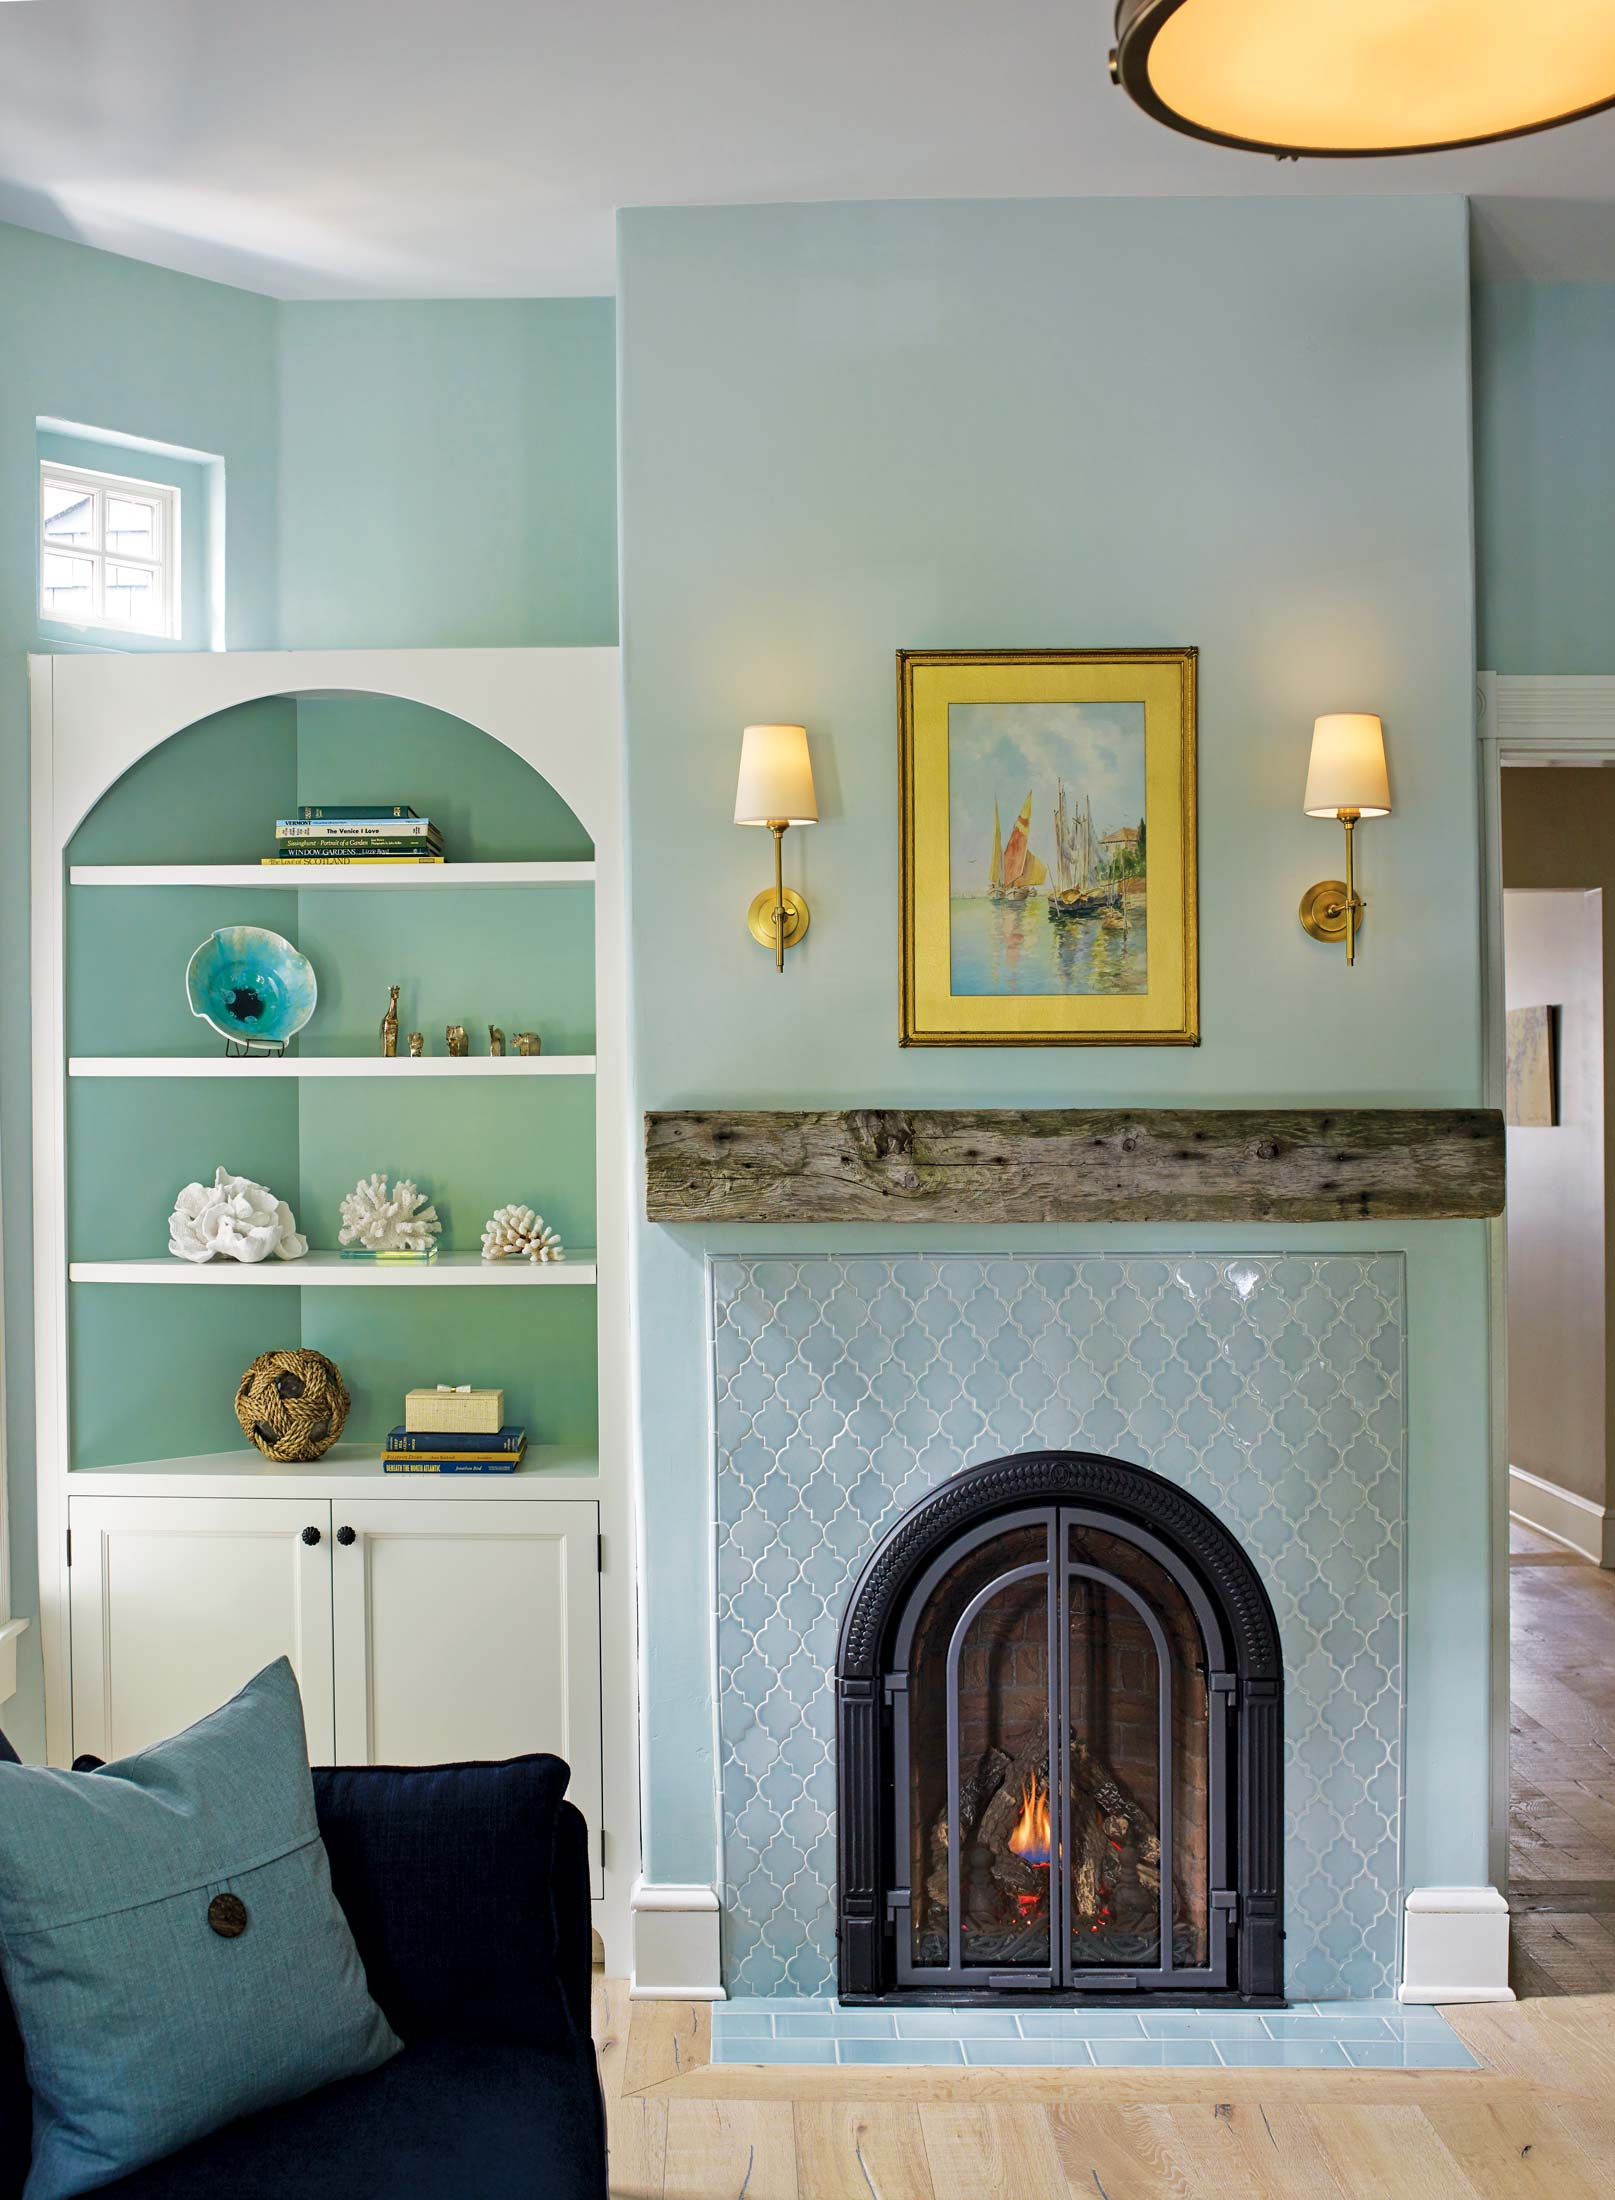 The arched fireplace is new, but Mark and Tracy found the salvaged mantel at Old House Parts Co. in Kennebunk.